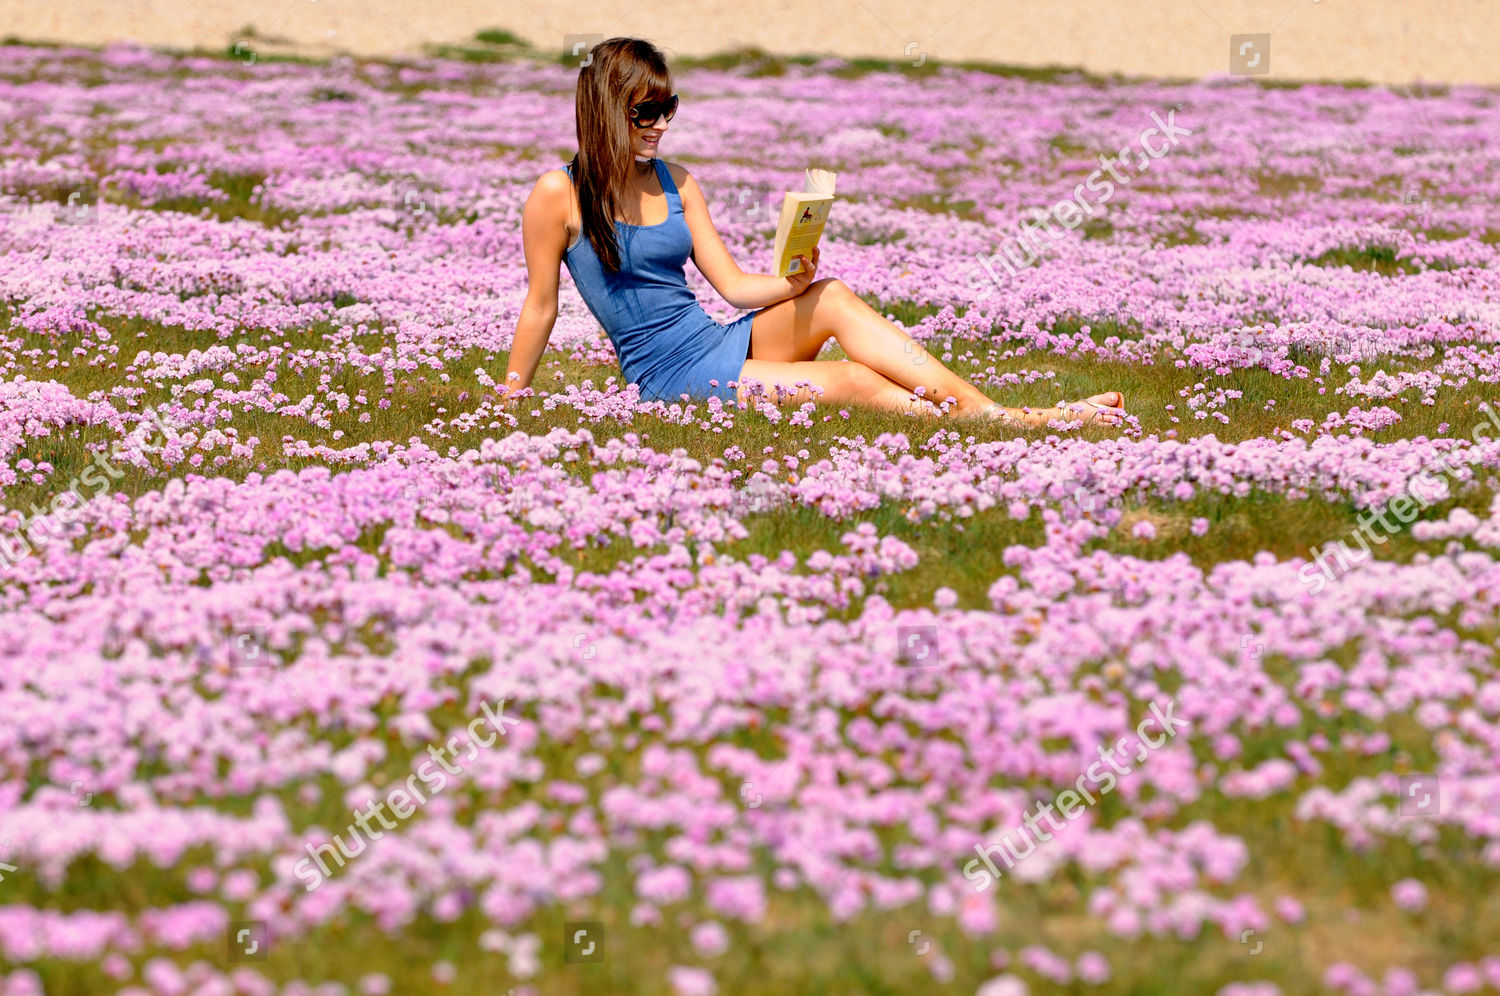 Rachel storey 22 amongst sea pinks editorial stock photo stock sea pinks armeria maritima in full flower at portland in dorset britain mightylinksfo